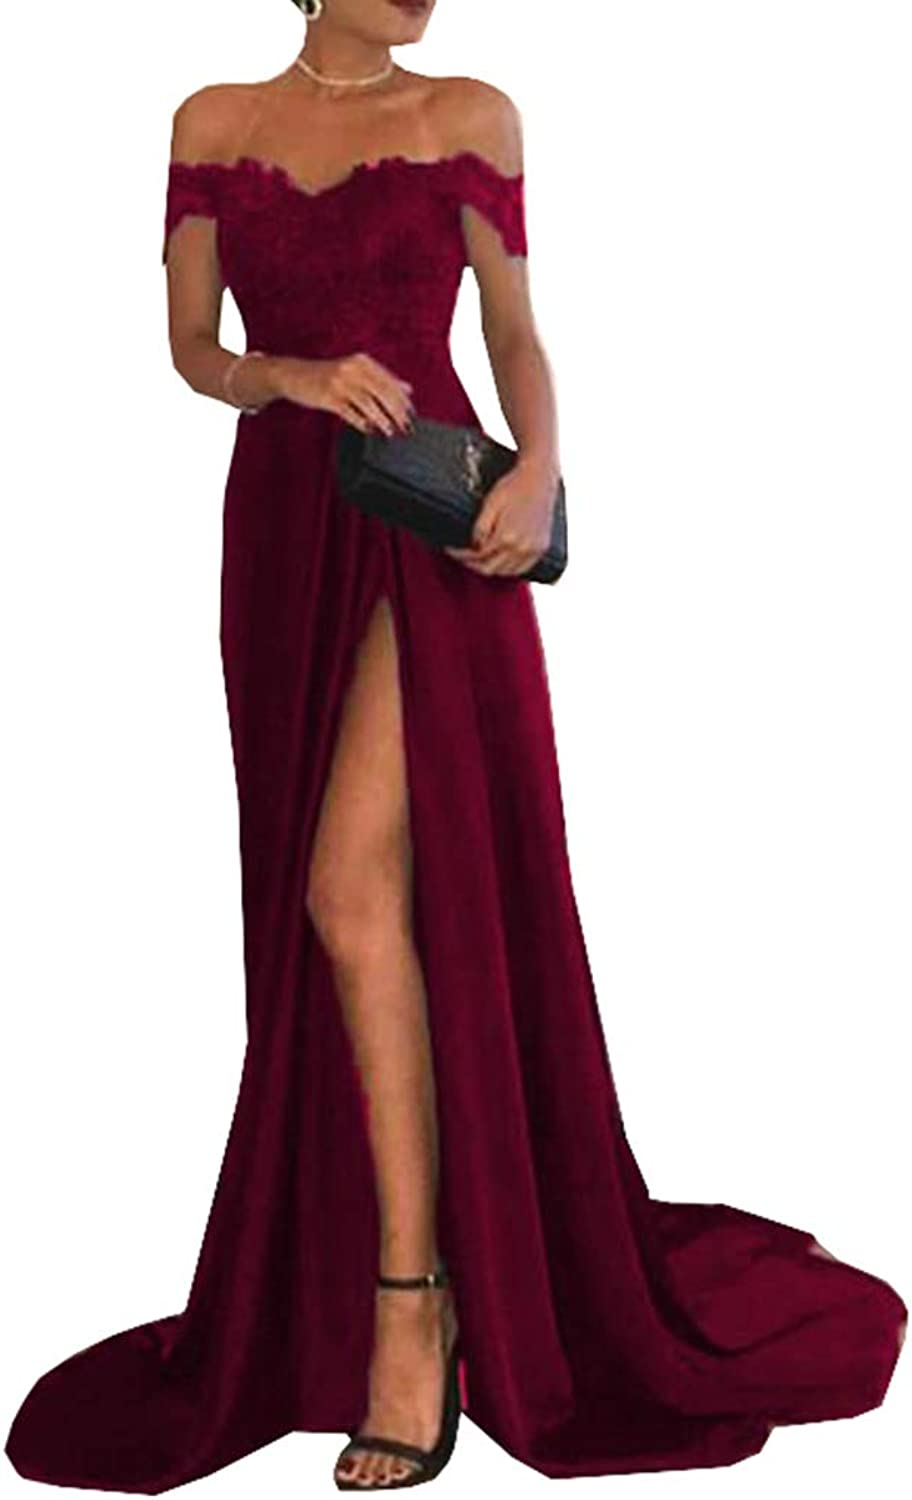 Engerla Bridal Off The Shoulder Evening Gowns Leg Slit Mermaid Sweetheart Prom Dresses Lace